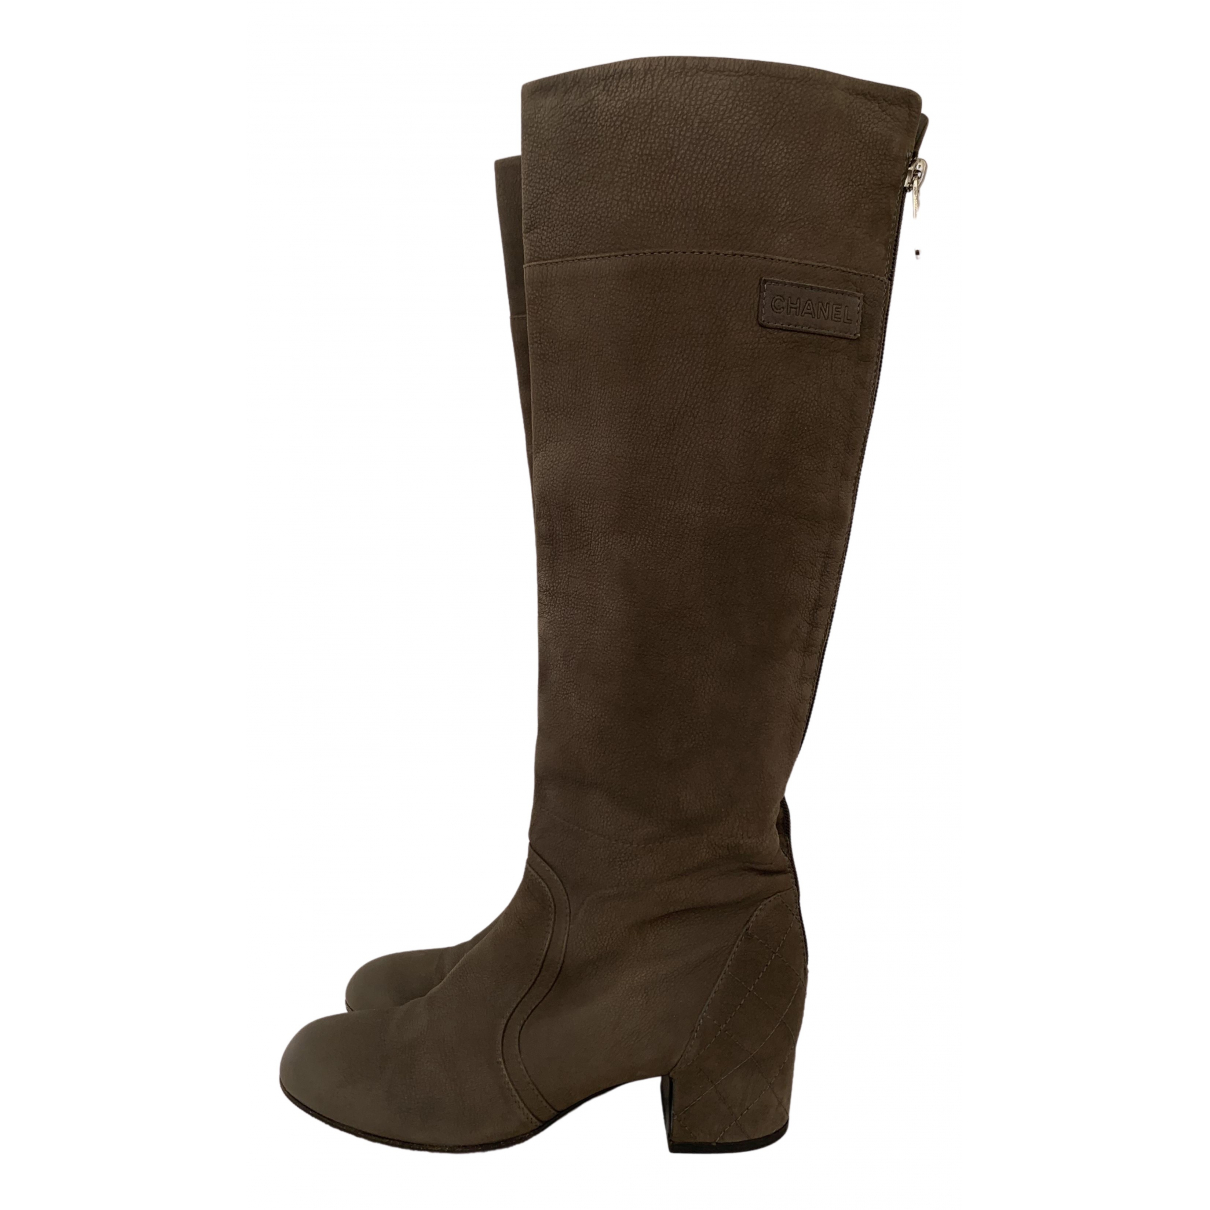 Chanel \N Grey Leather Boots for Women 38.5 EU